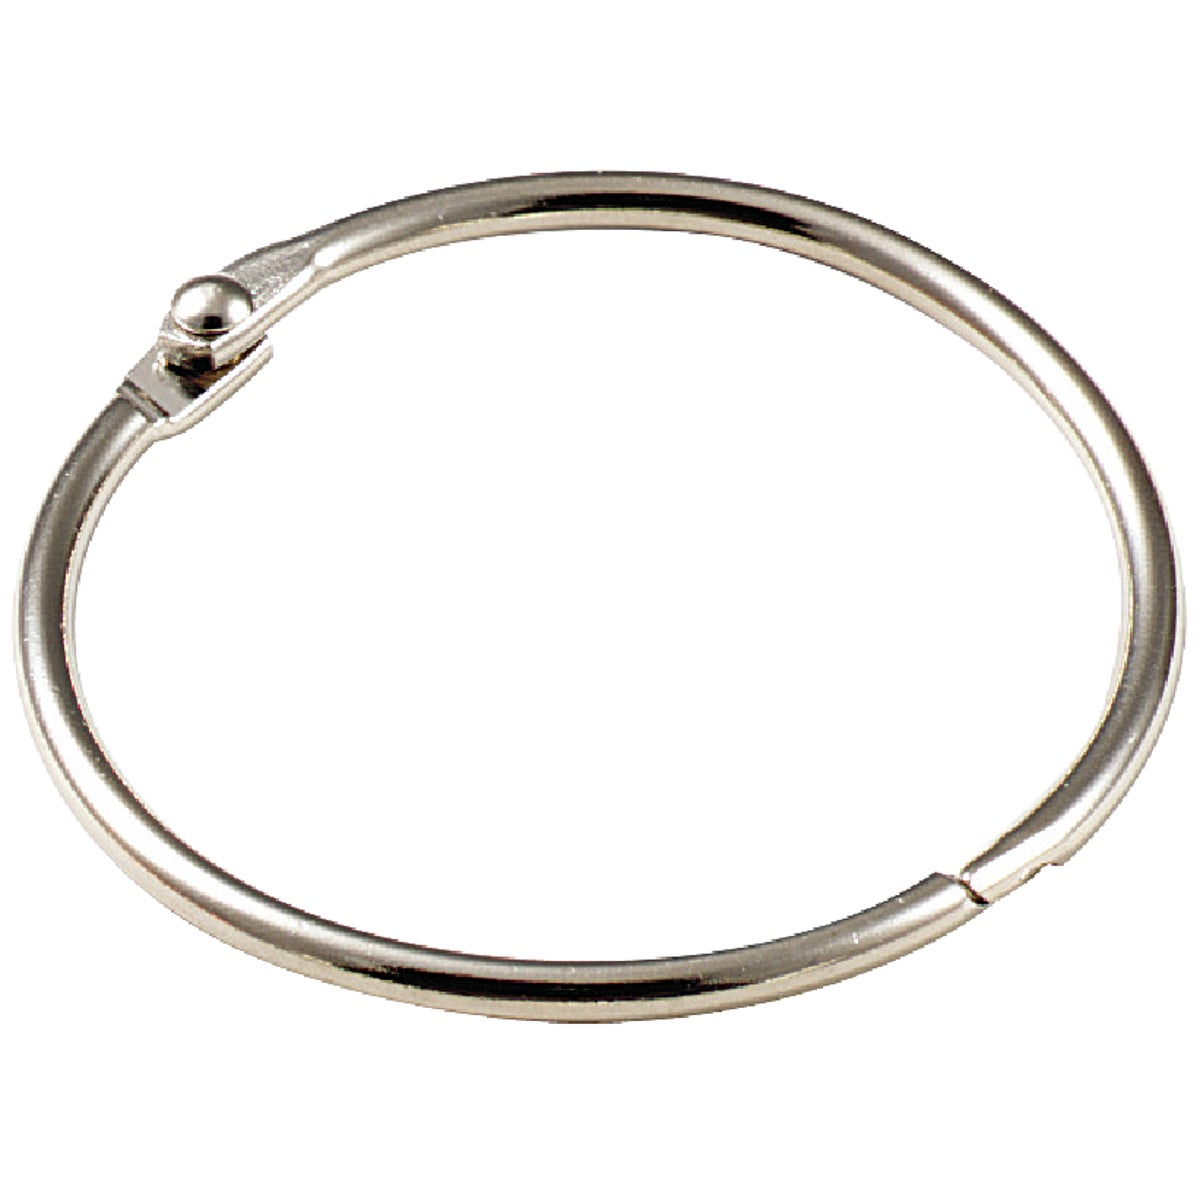 "2CD 2"" BINDER RING - 24602 by Lucky Line Prod Inc"